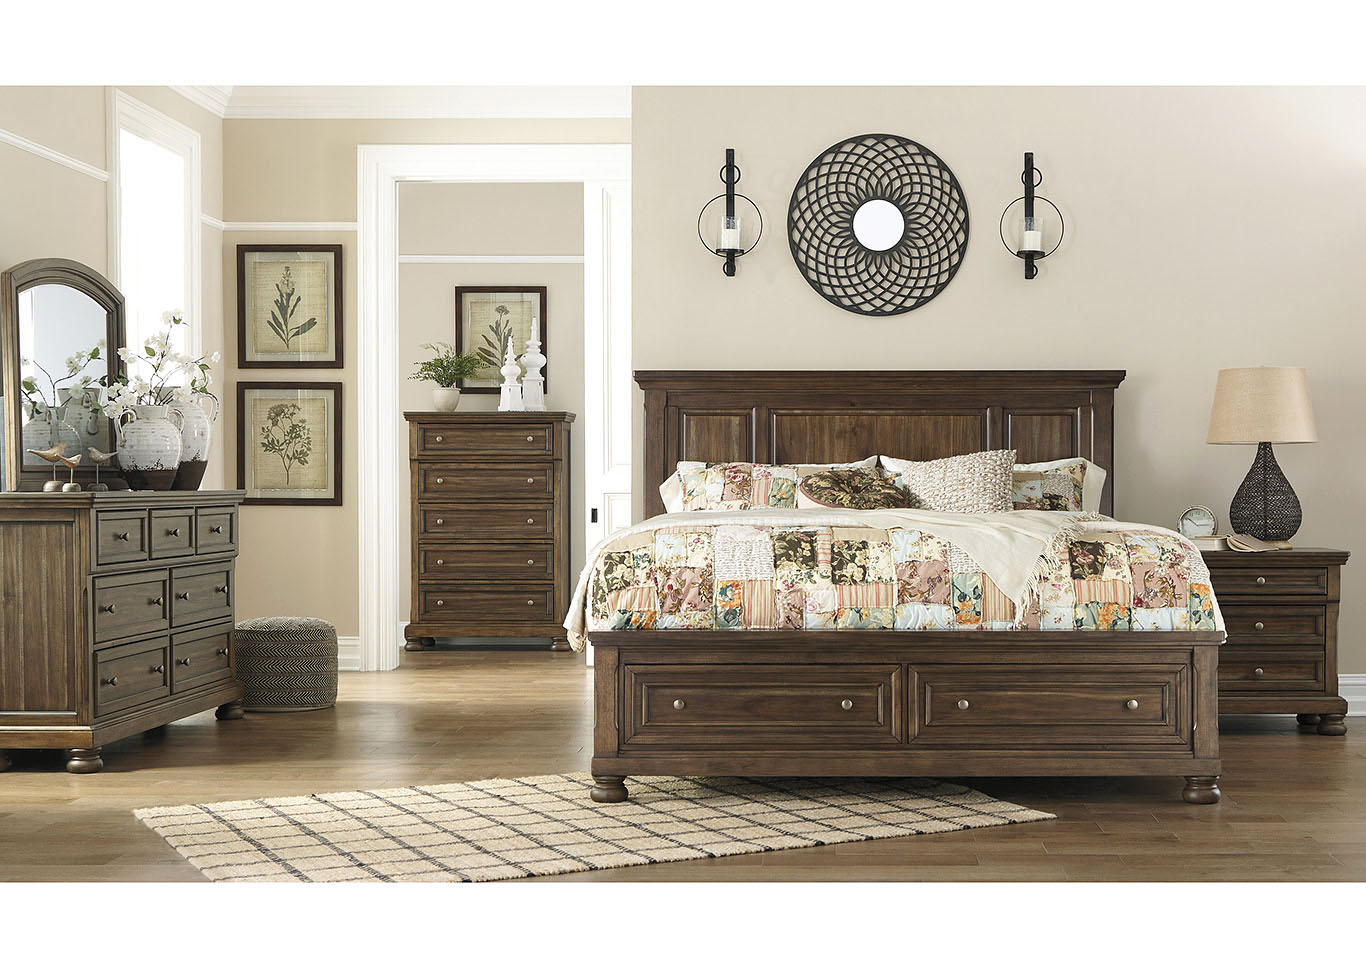 Flynnter Medium Brown King Sleigh Storage Bed,Signature Design By Ashley